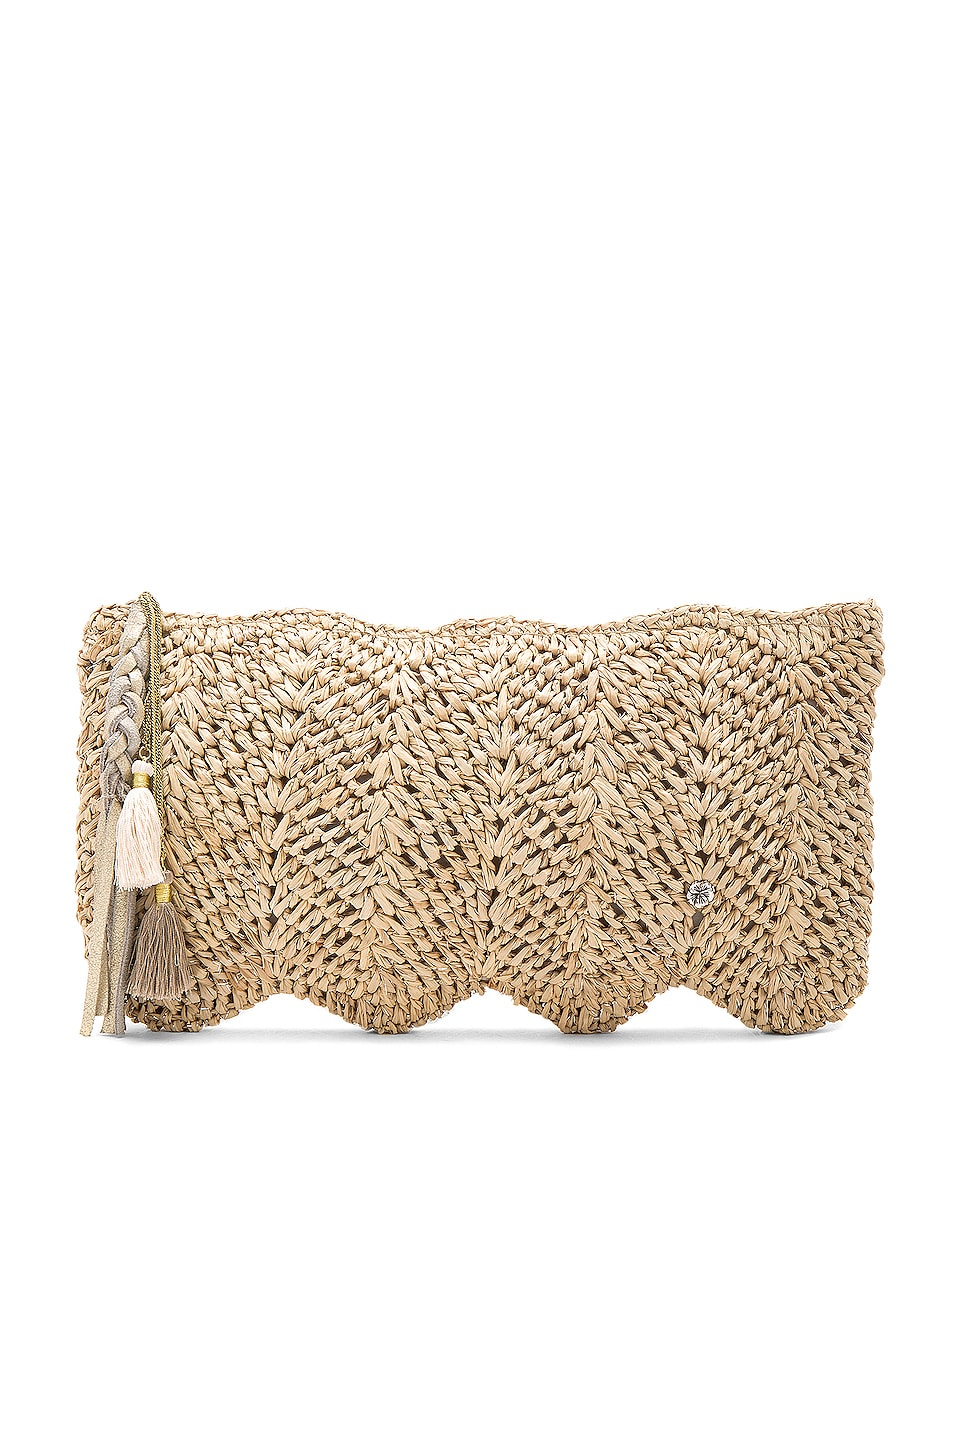 florabella Avon Clutch in Almond Silver